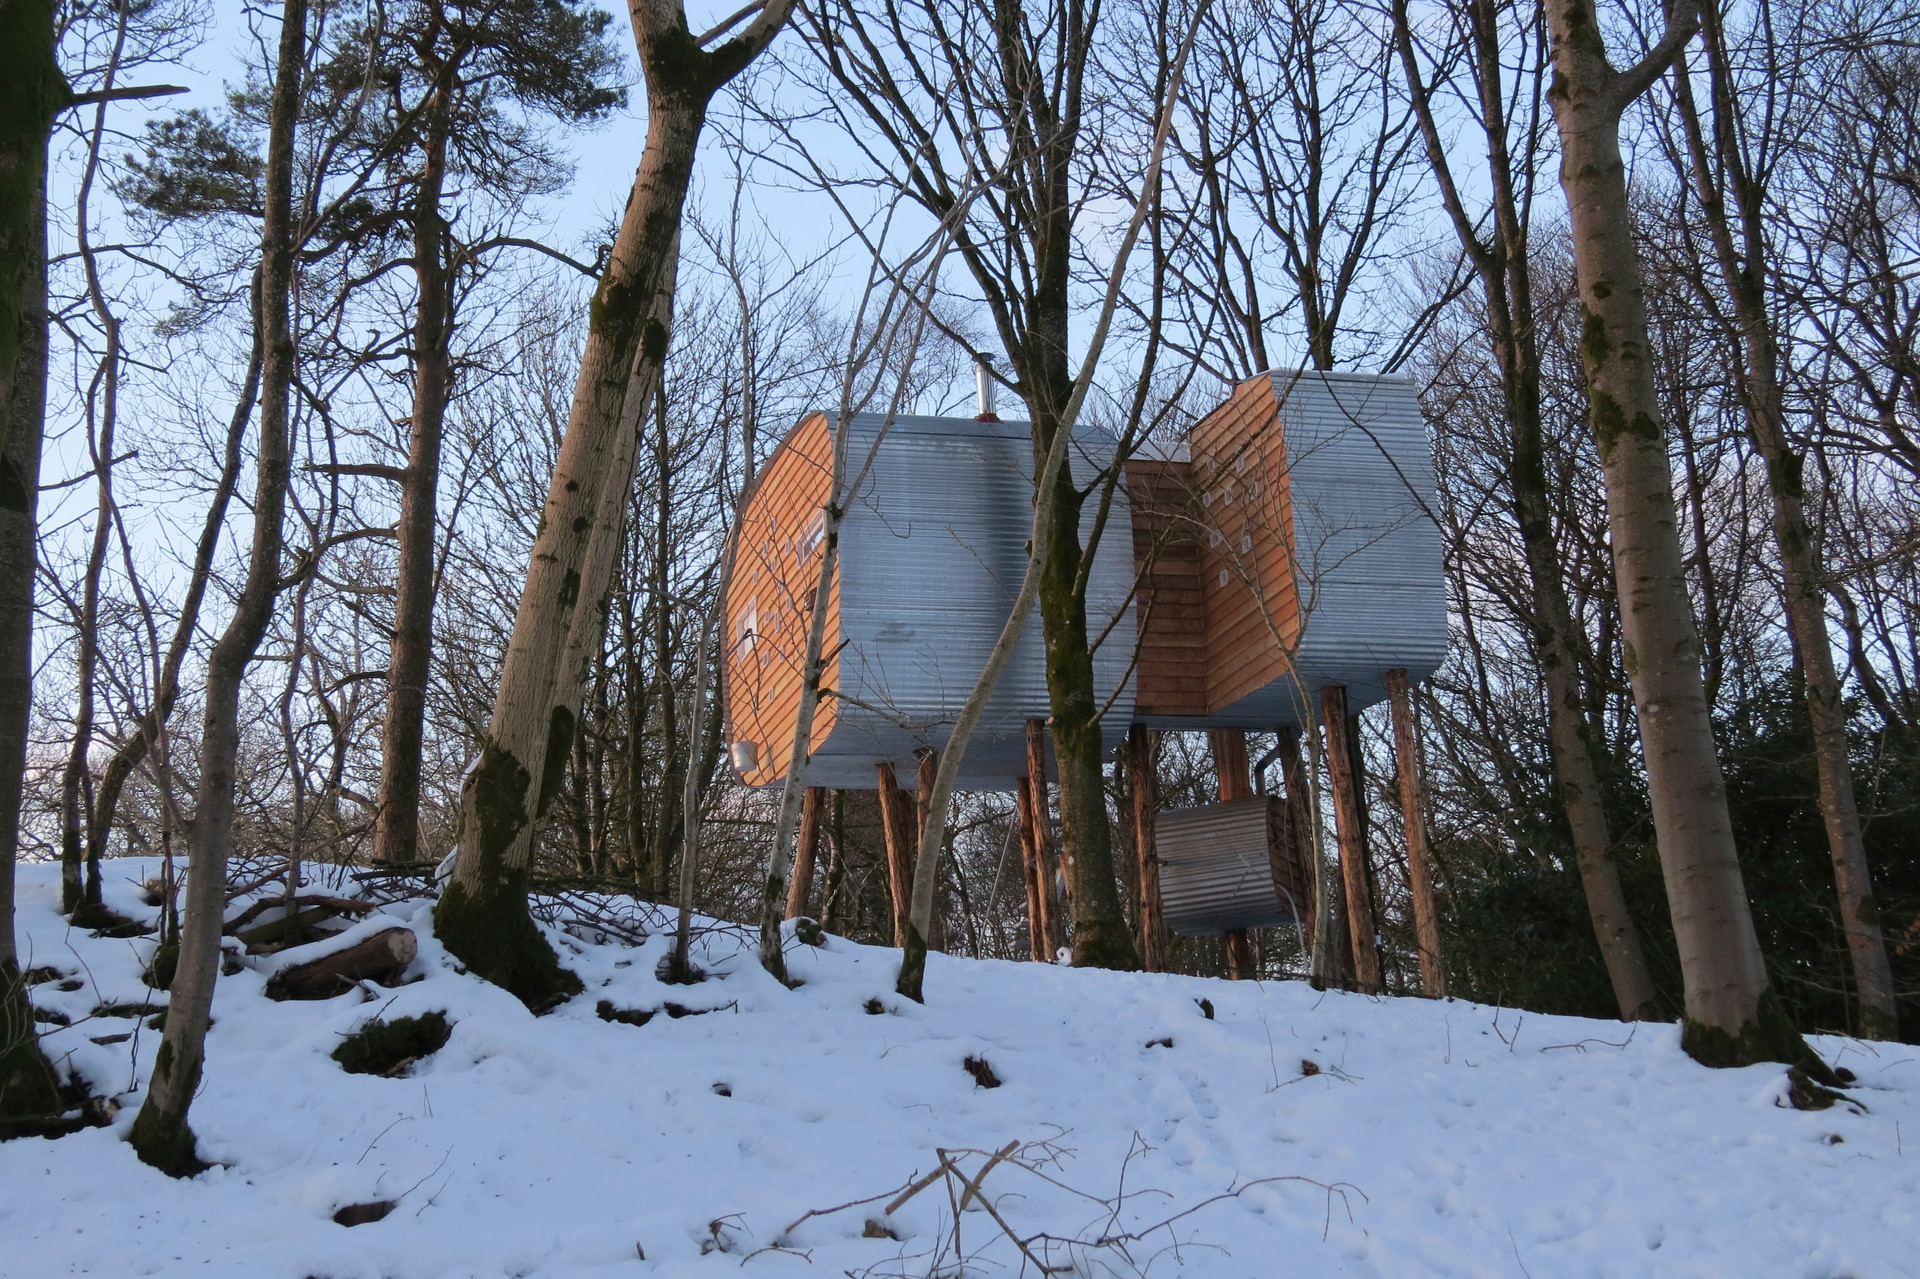 Brockloch Treehouse in the snow